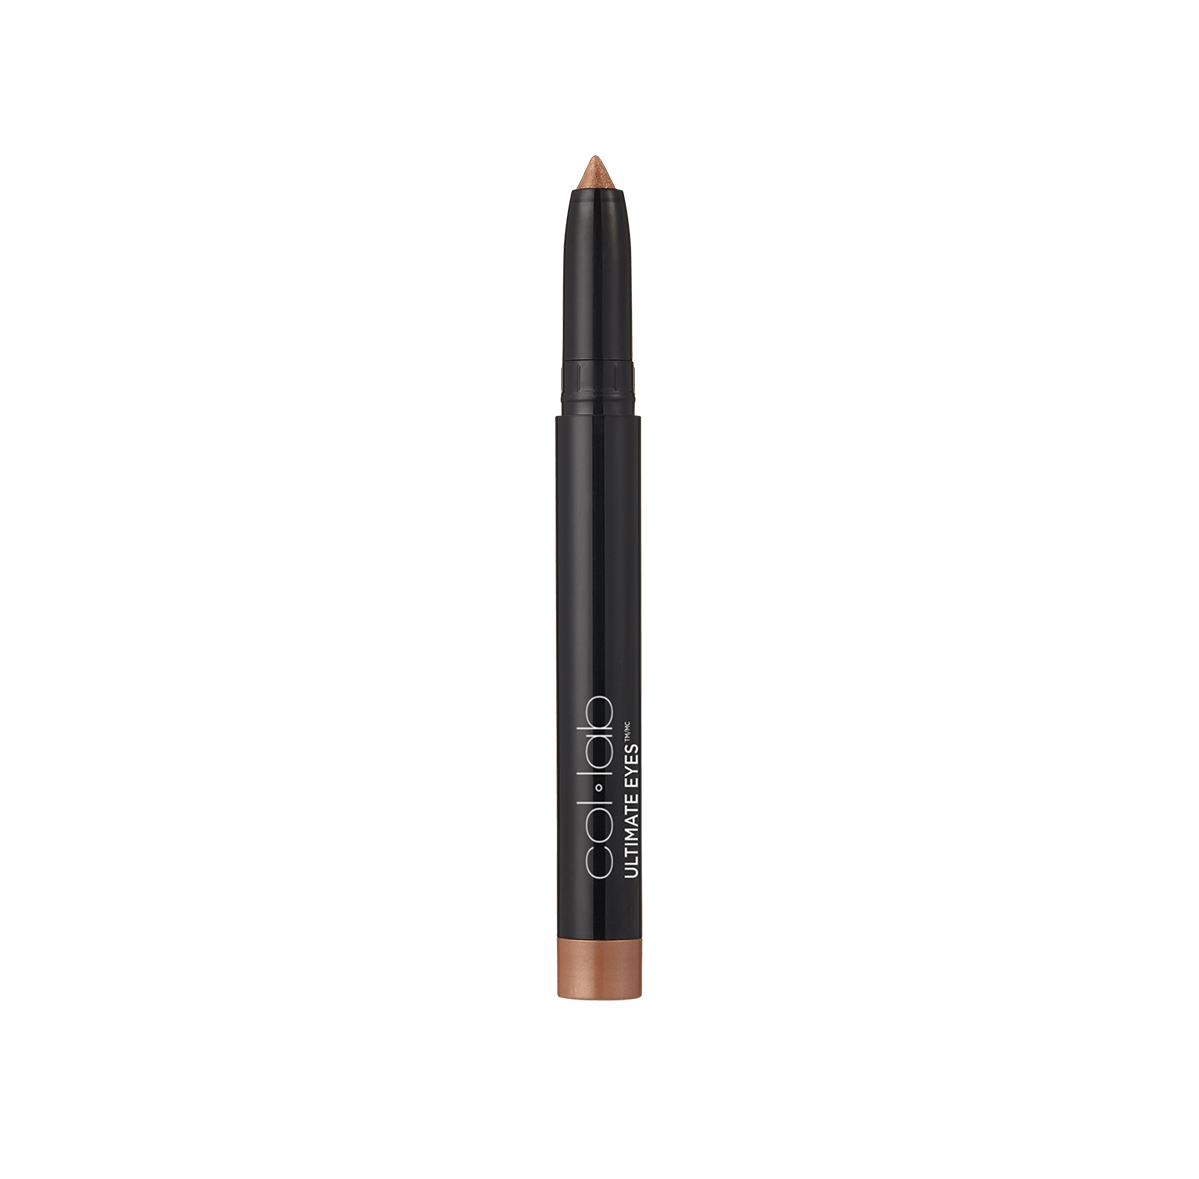 collab-shape-and-shade-brow-pencil- copperobsession-open.png